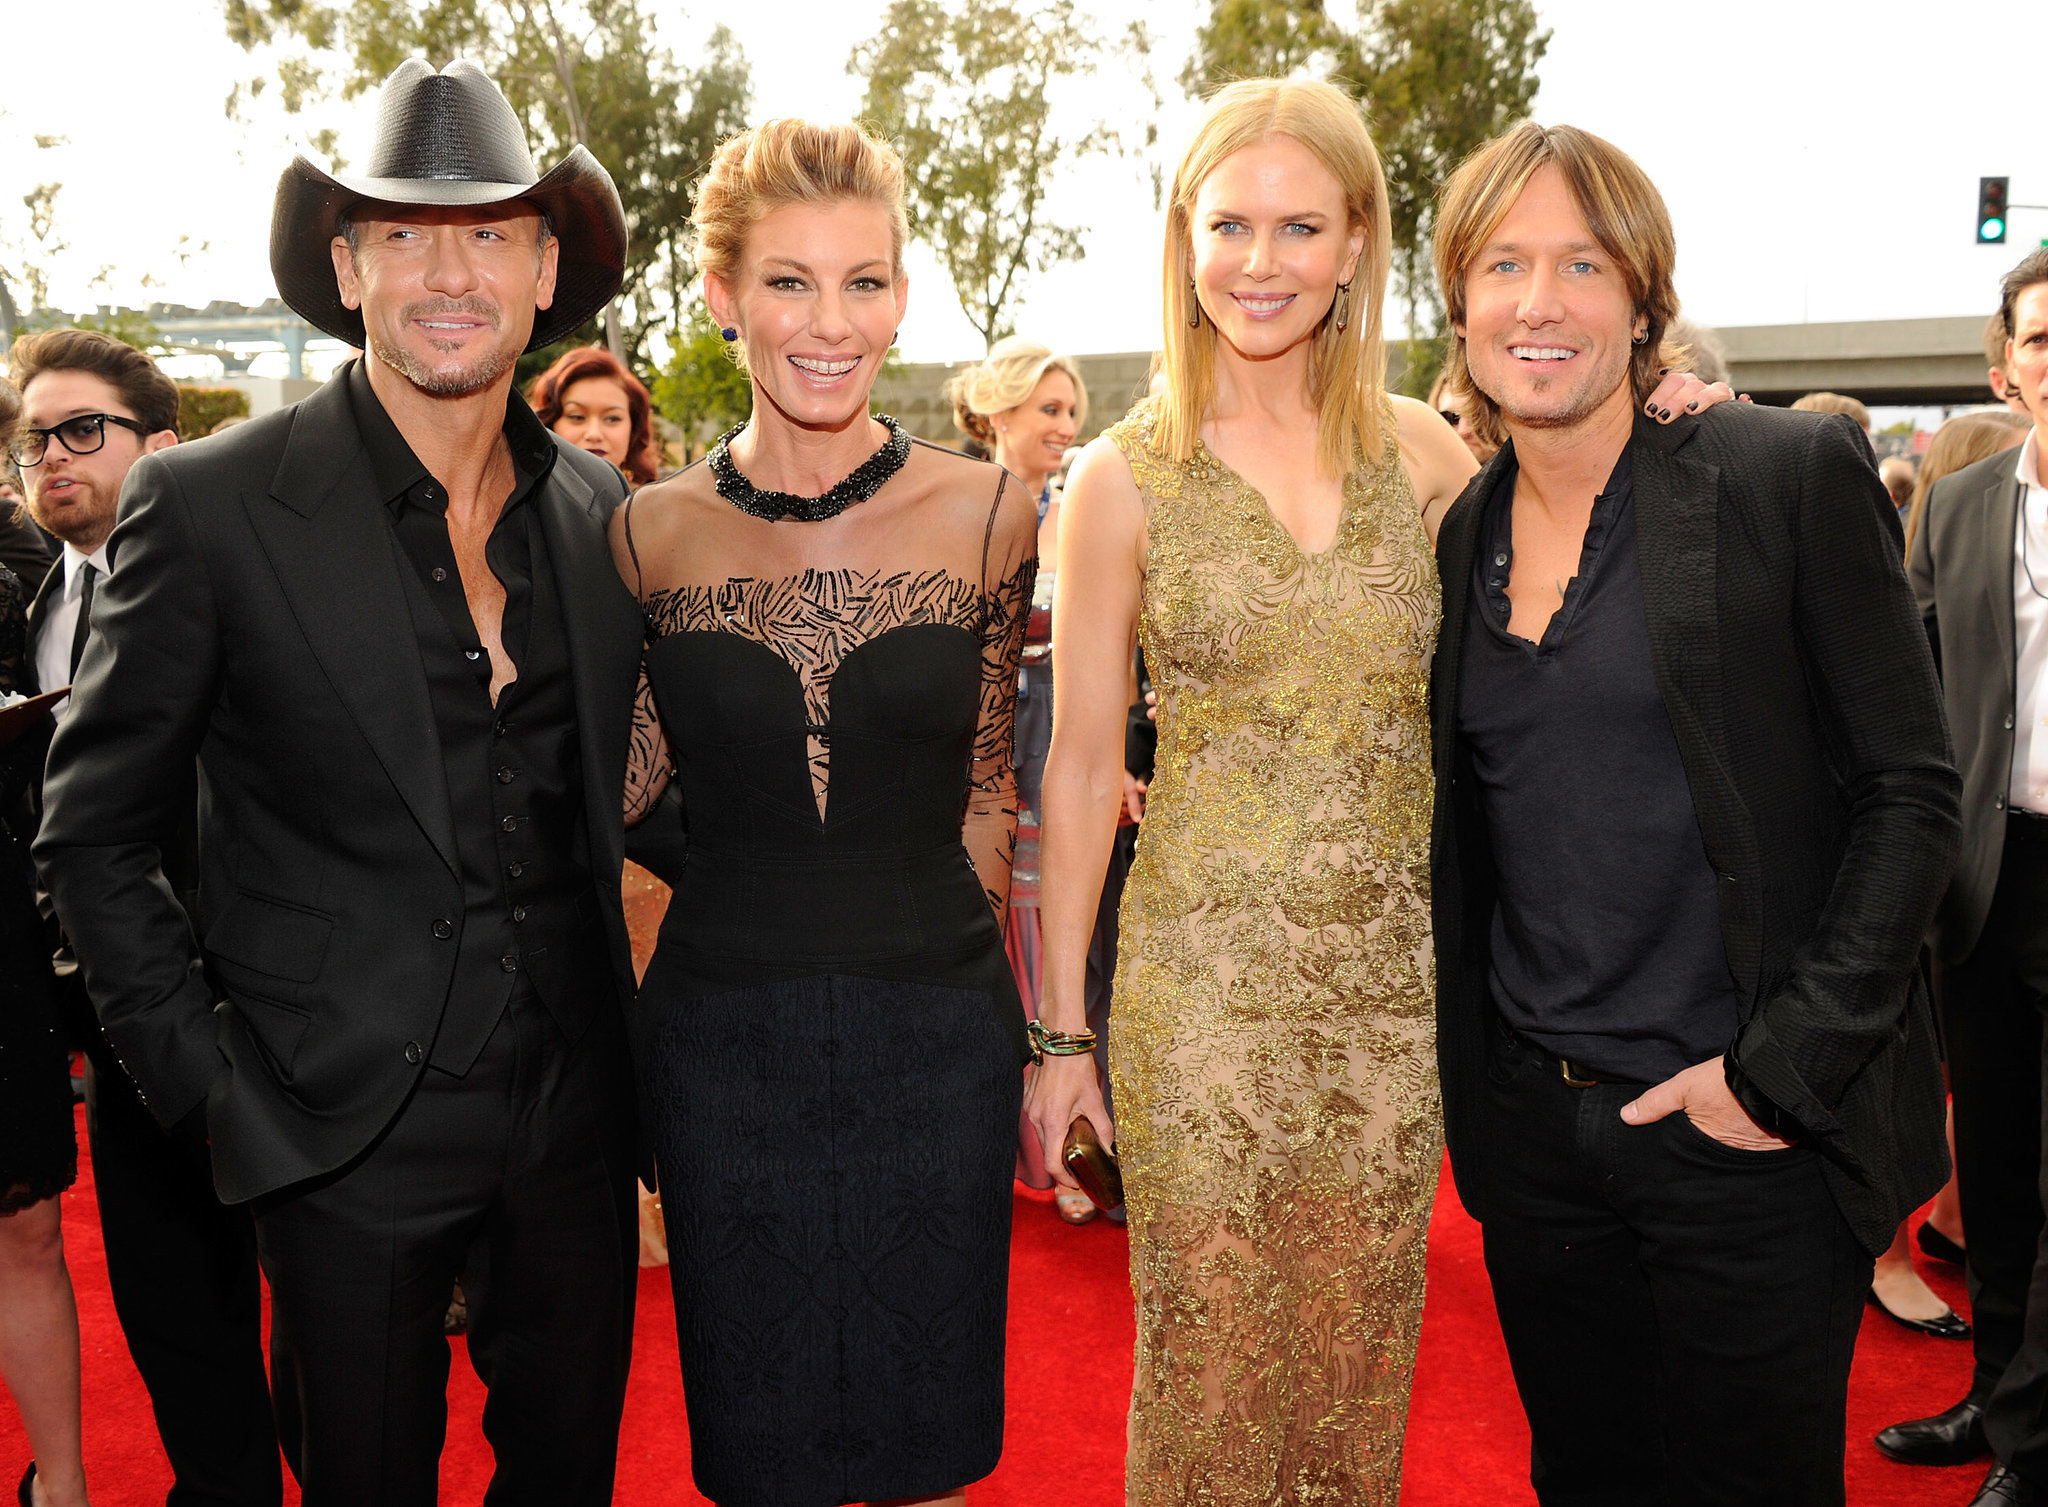 Tim McGraw, Faith Hill, Nicole Kidman, and Keith Urban, 2013